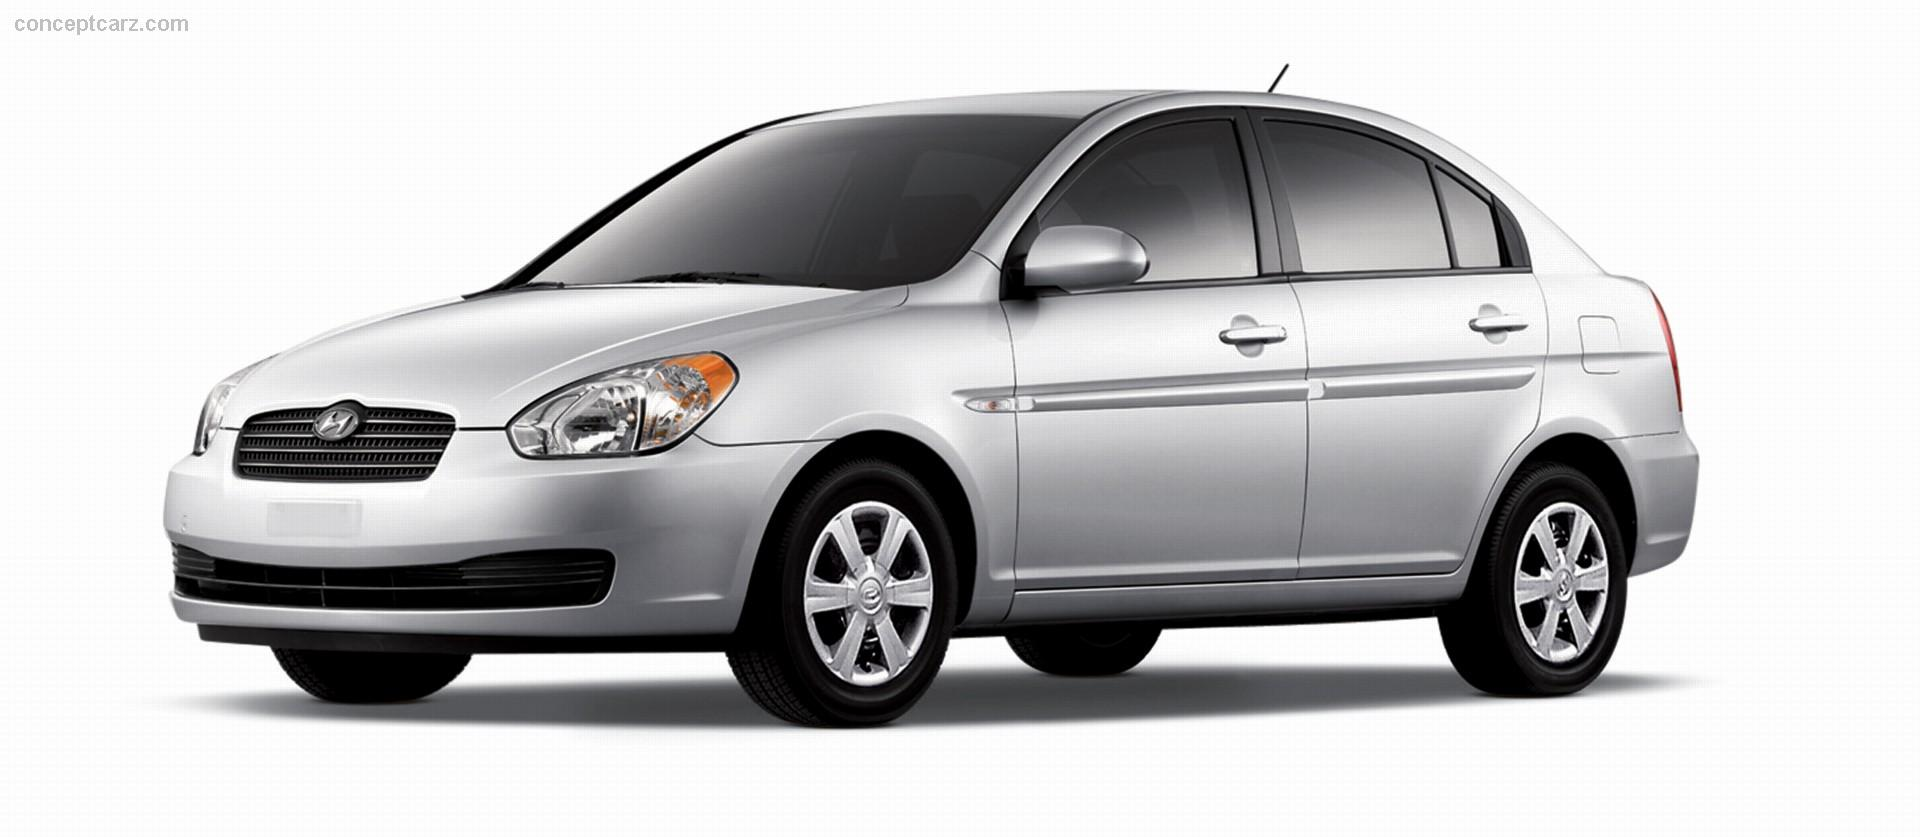 2007 Hyundai Accent Gls History Pictures Value Auction